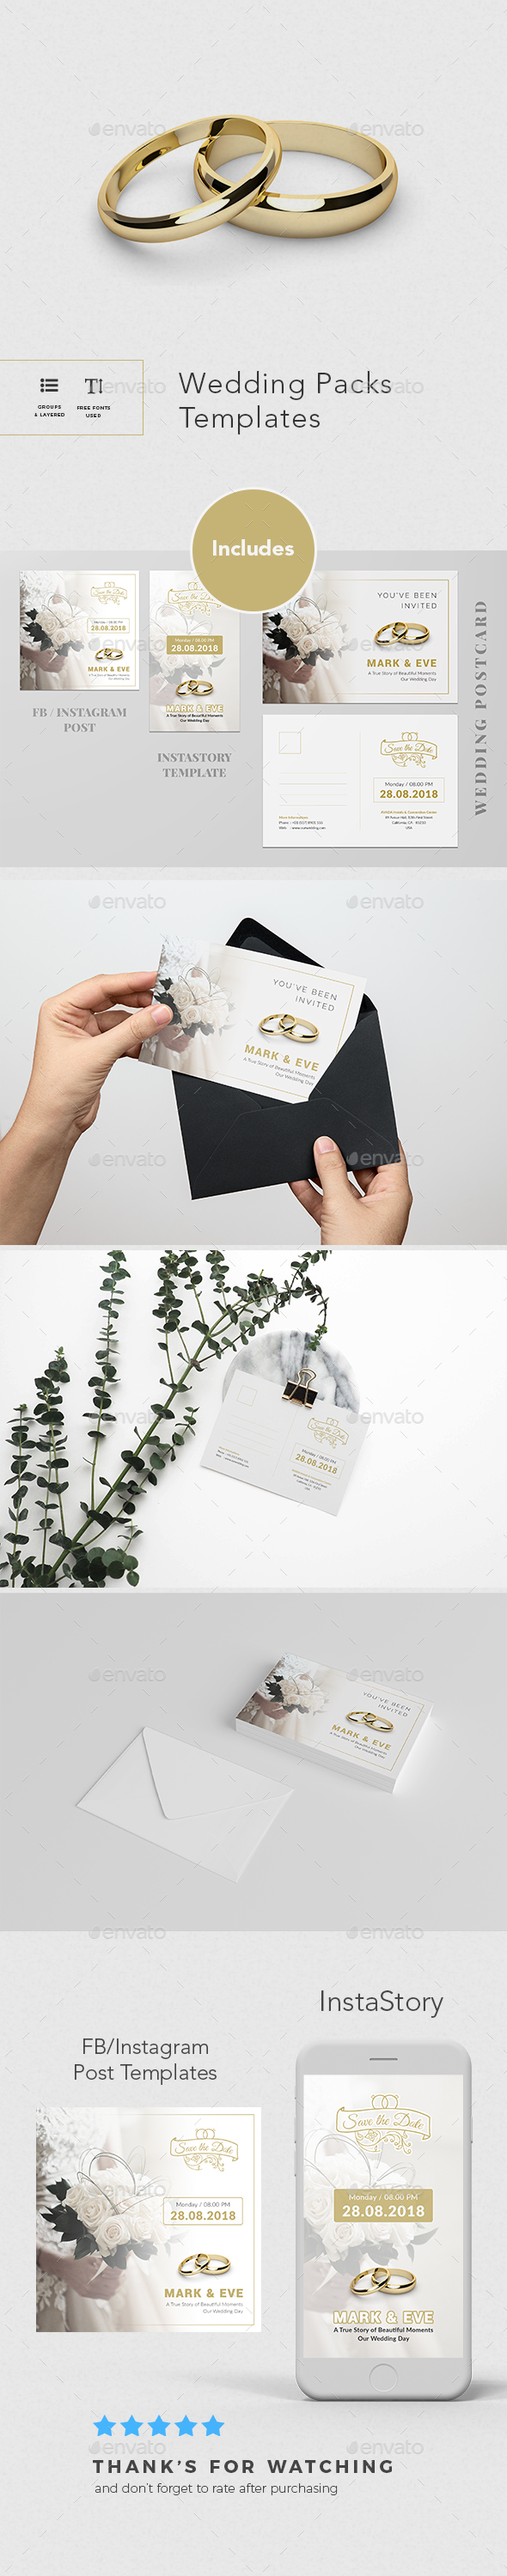 Wedding Postcard + Extras - Cards & Invites Print Templates